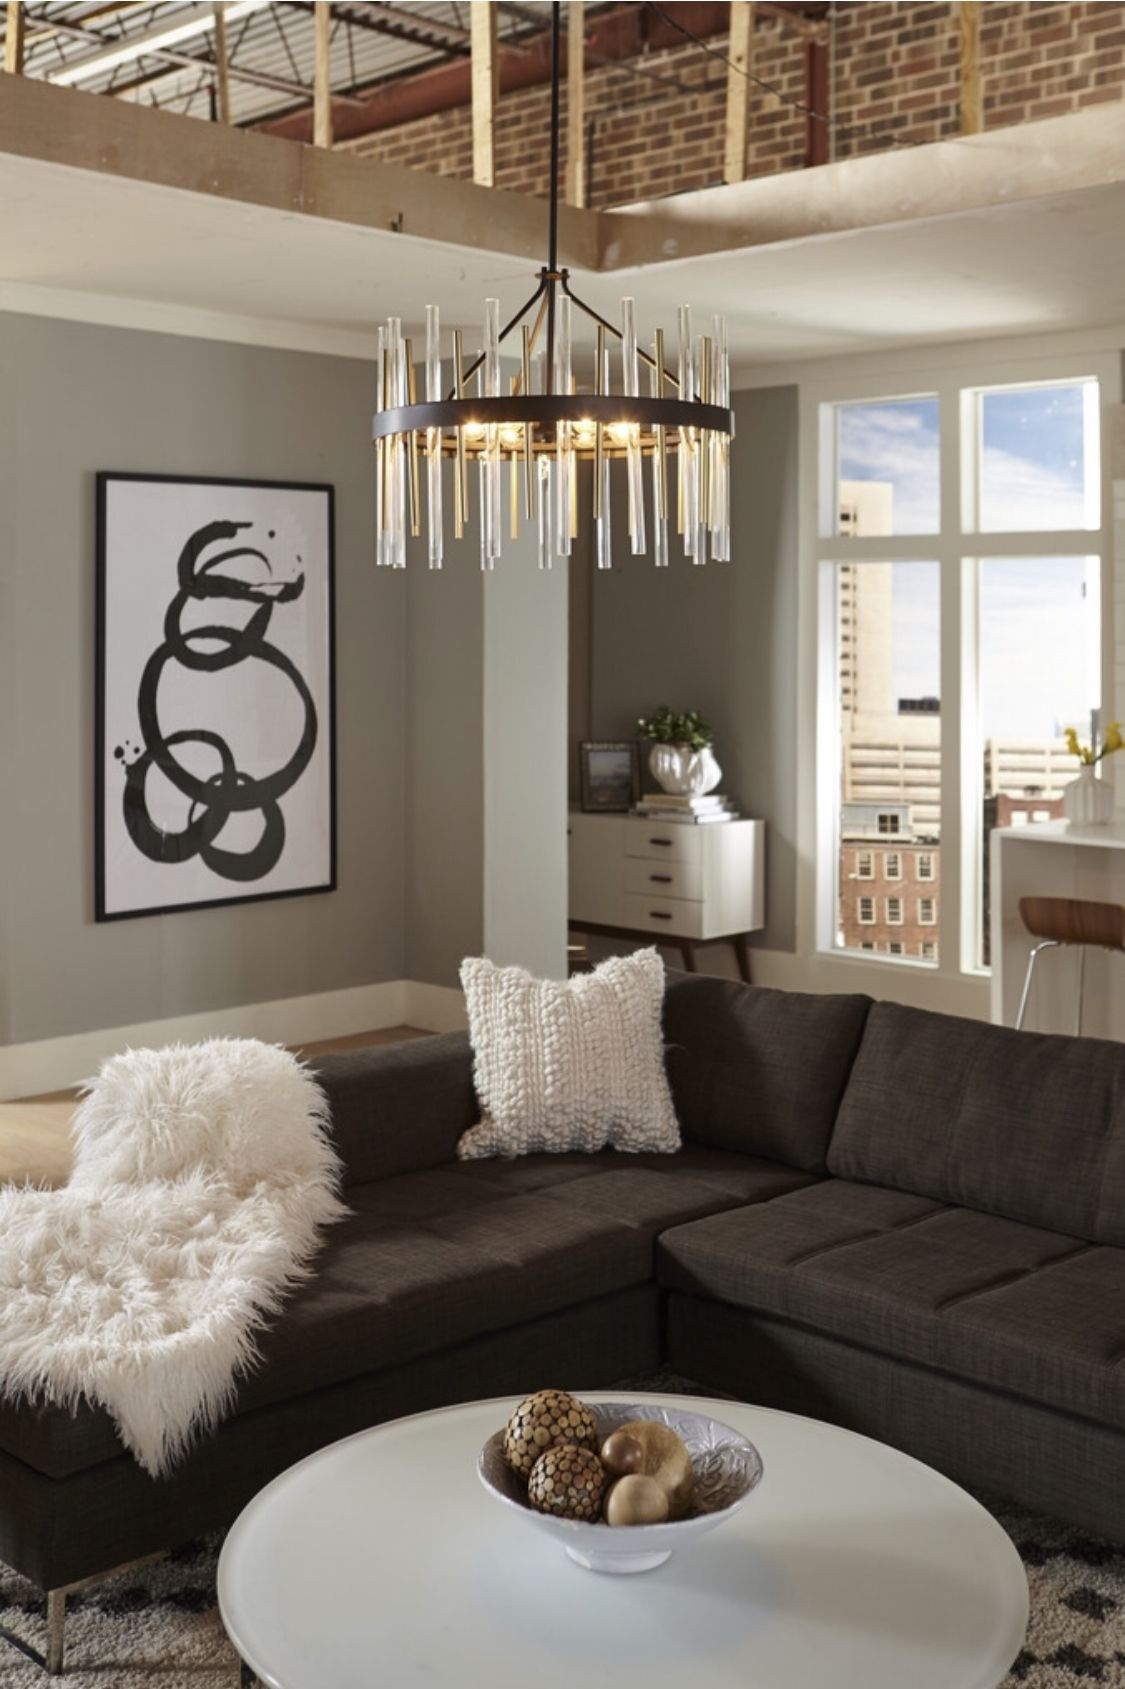 Modern Luxurious Living Room Design Features Large Geometric